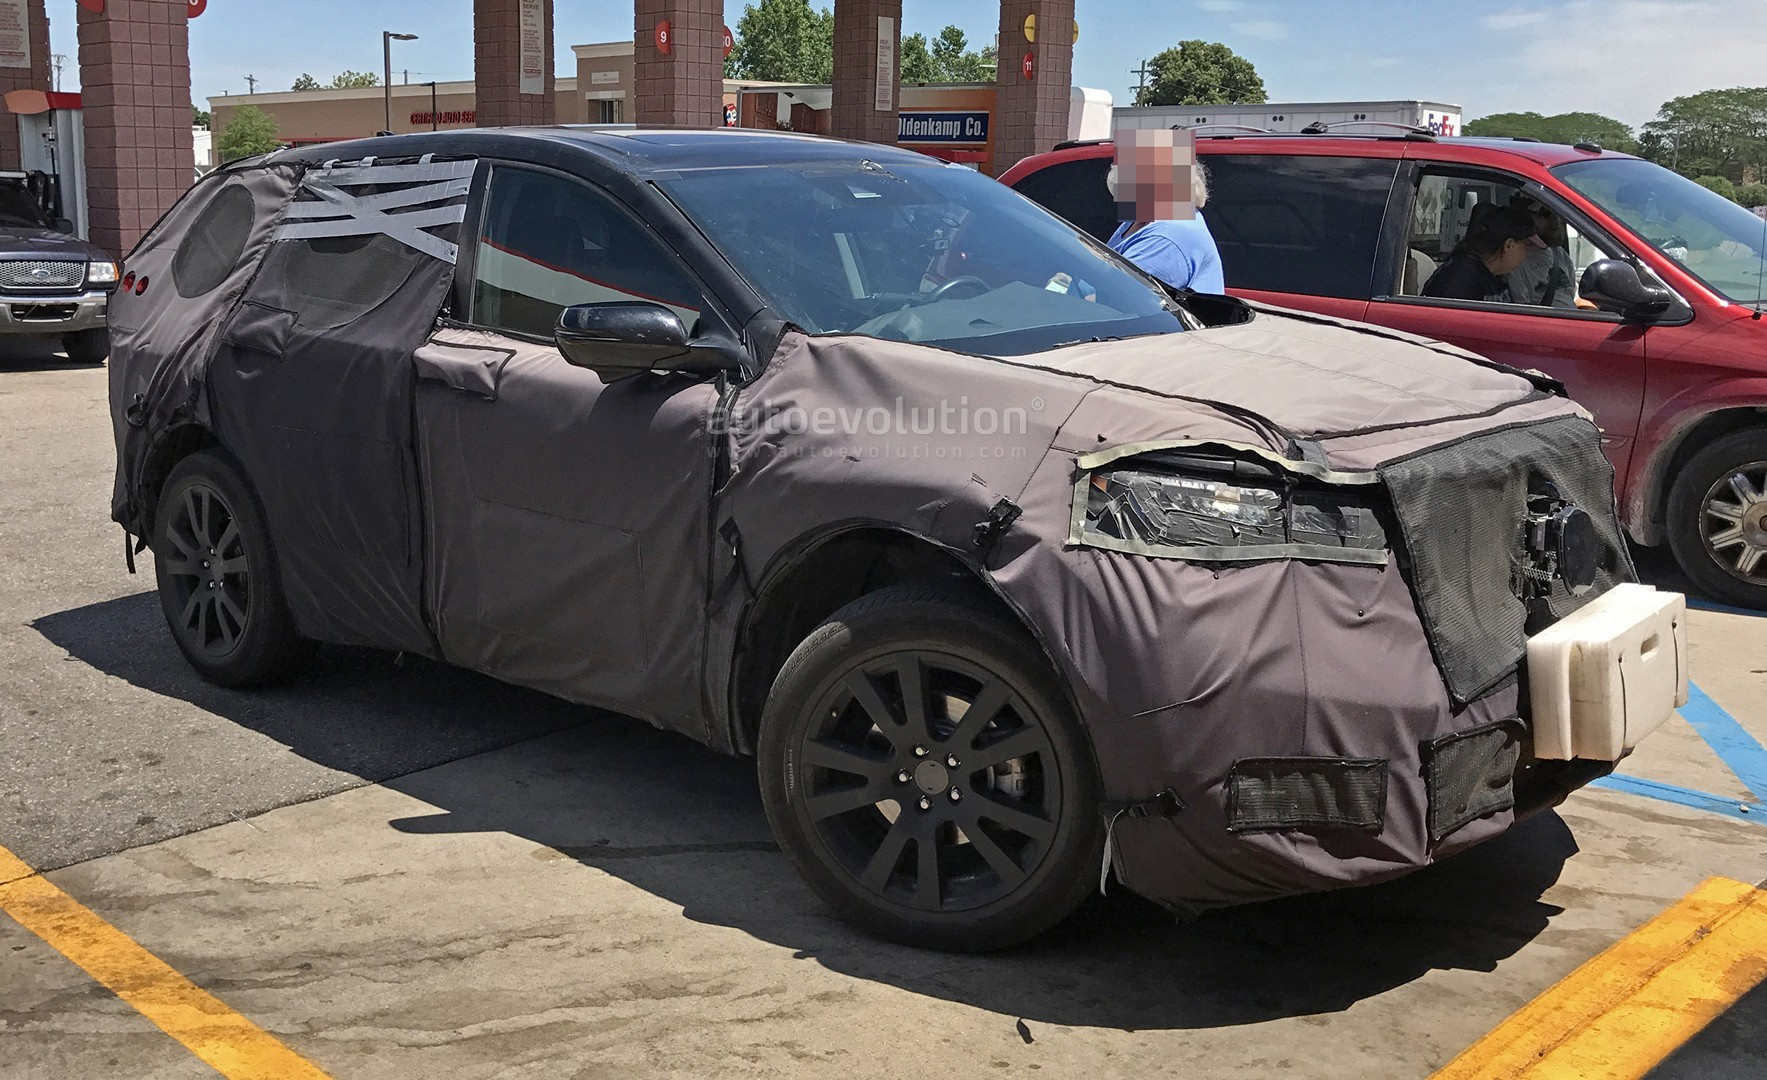 2019 Acura Rdx Confirmed To Debut In Detroit Autoevolution